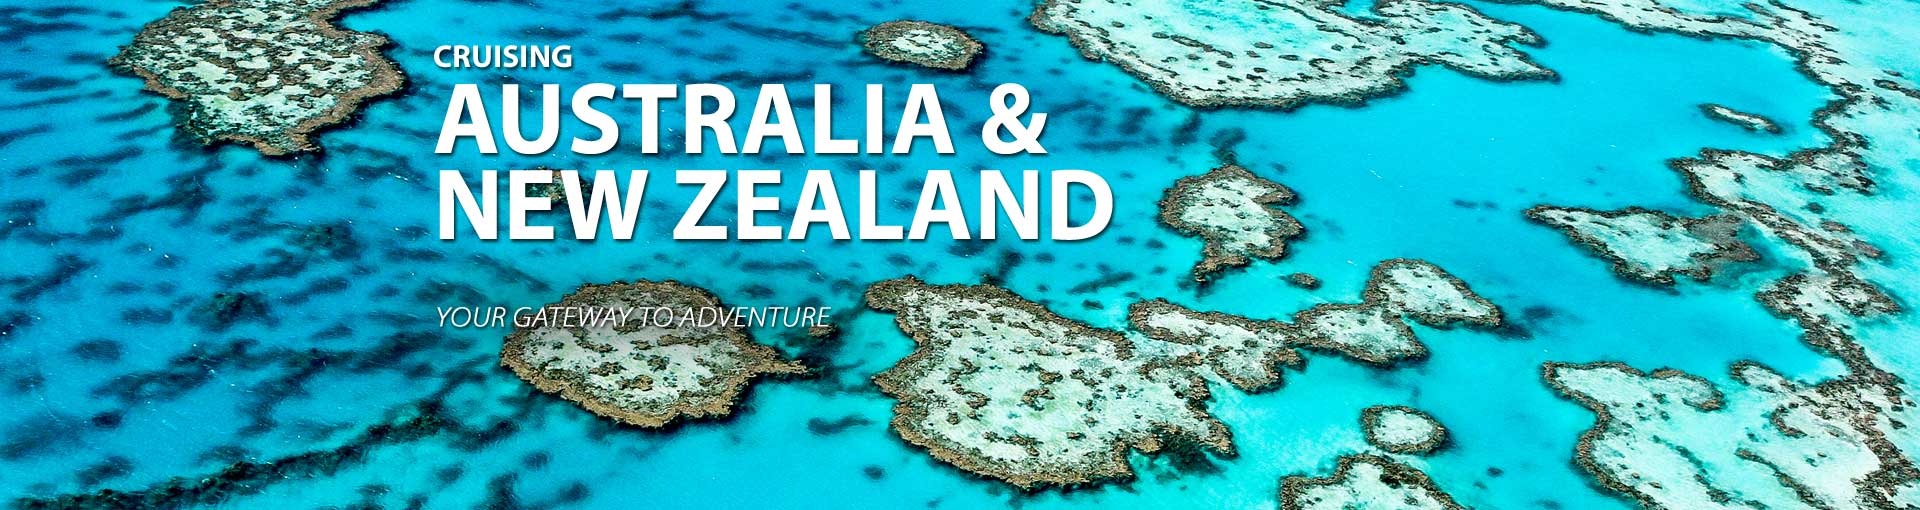 Cruises to Australia and New Zealand